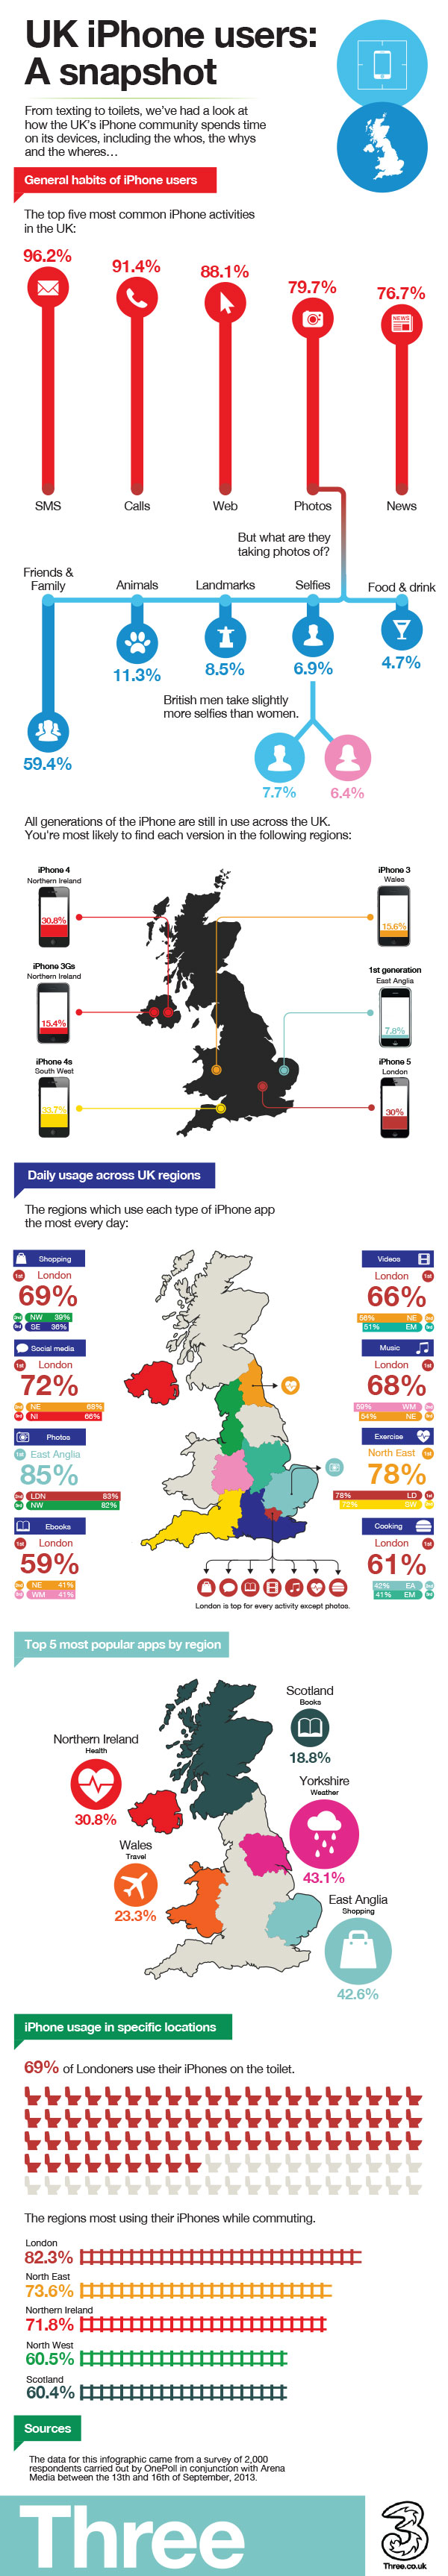 A Snapshot Of UK's iPhone Habits